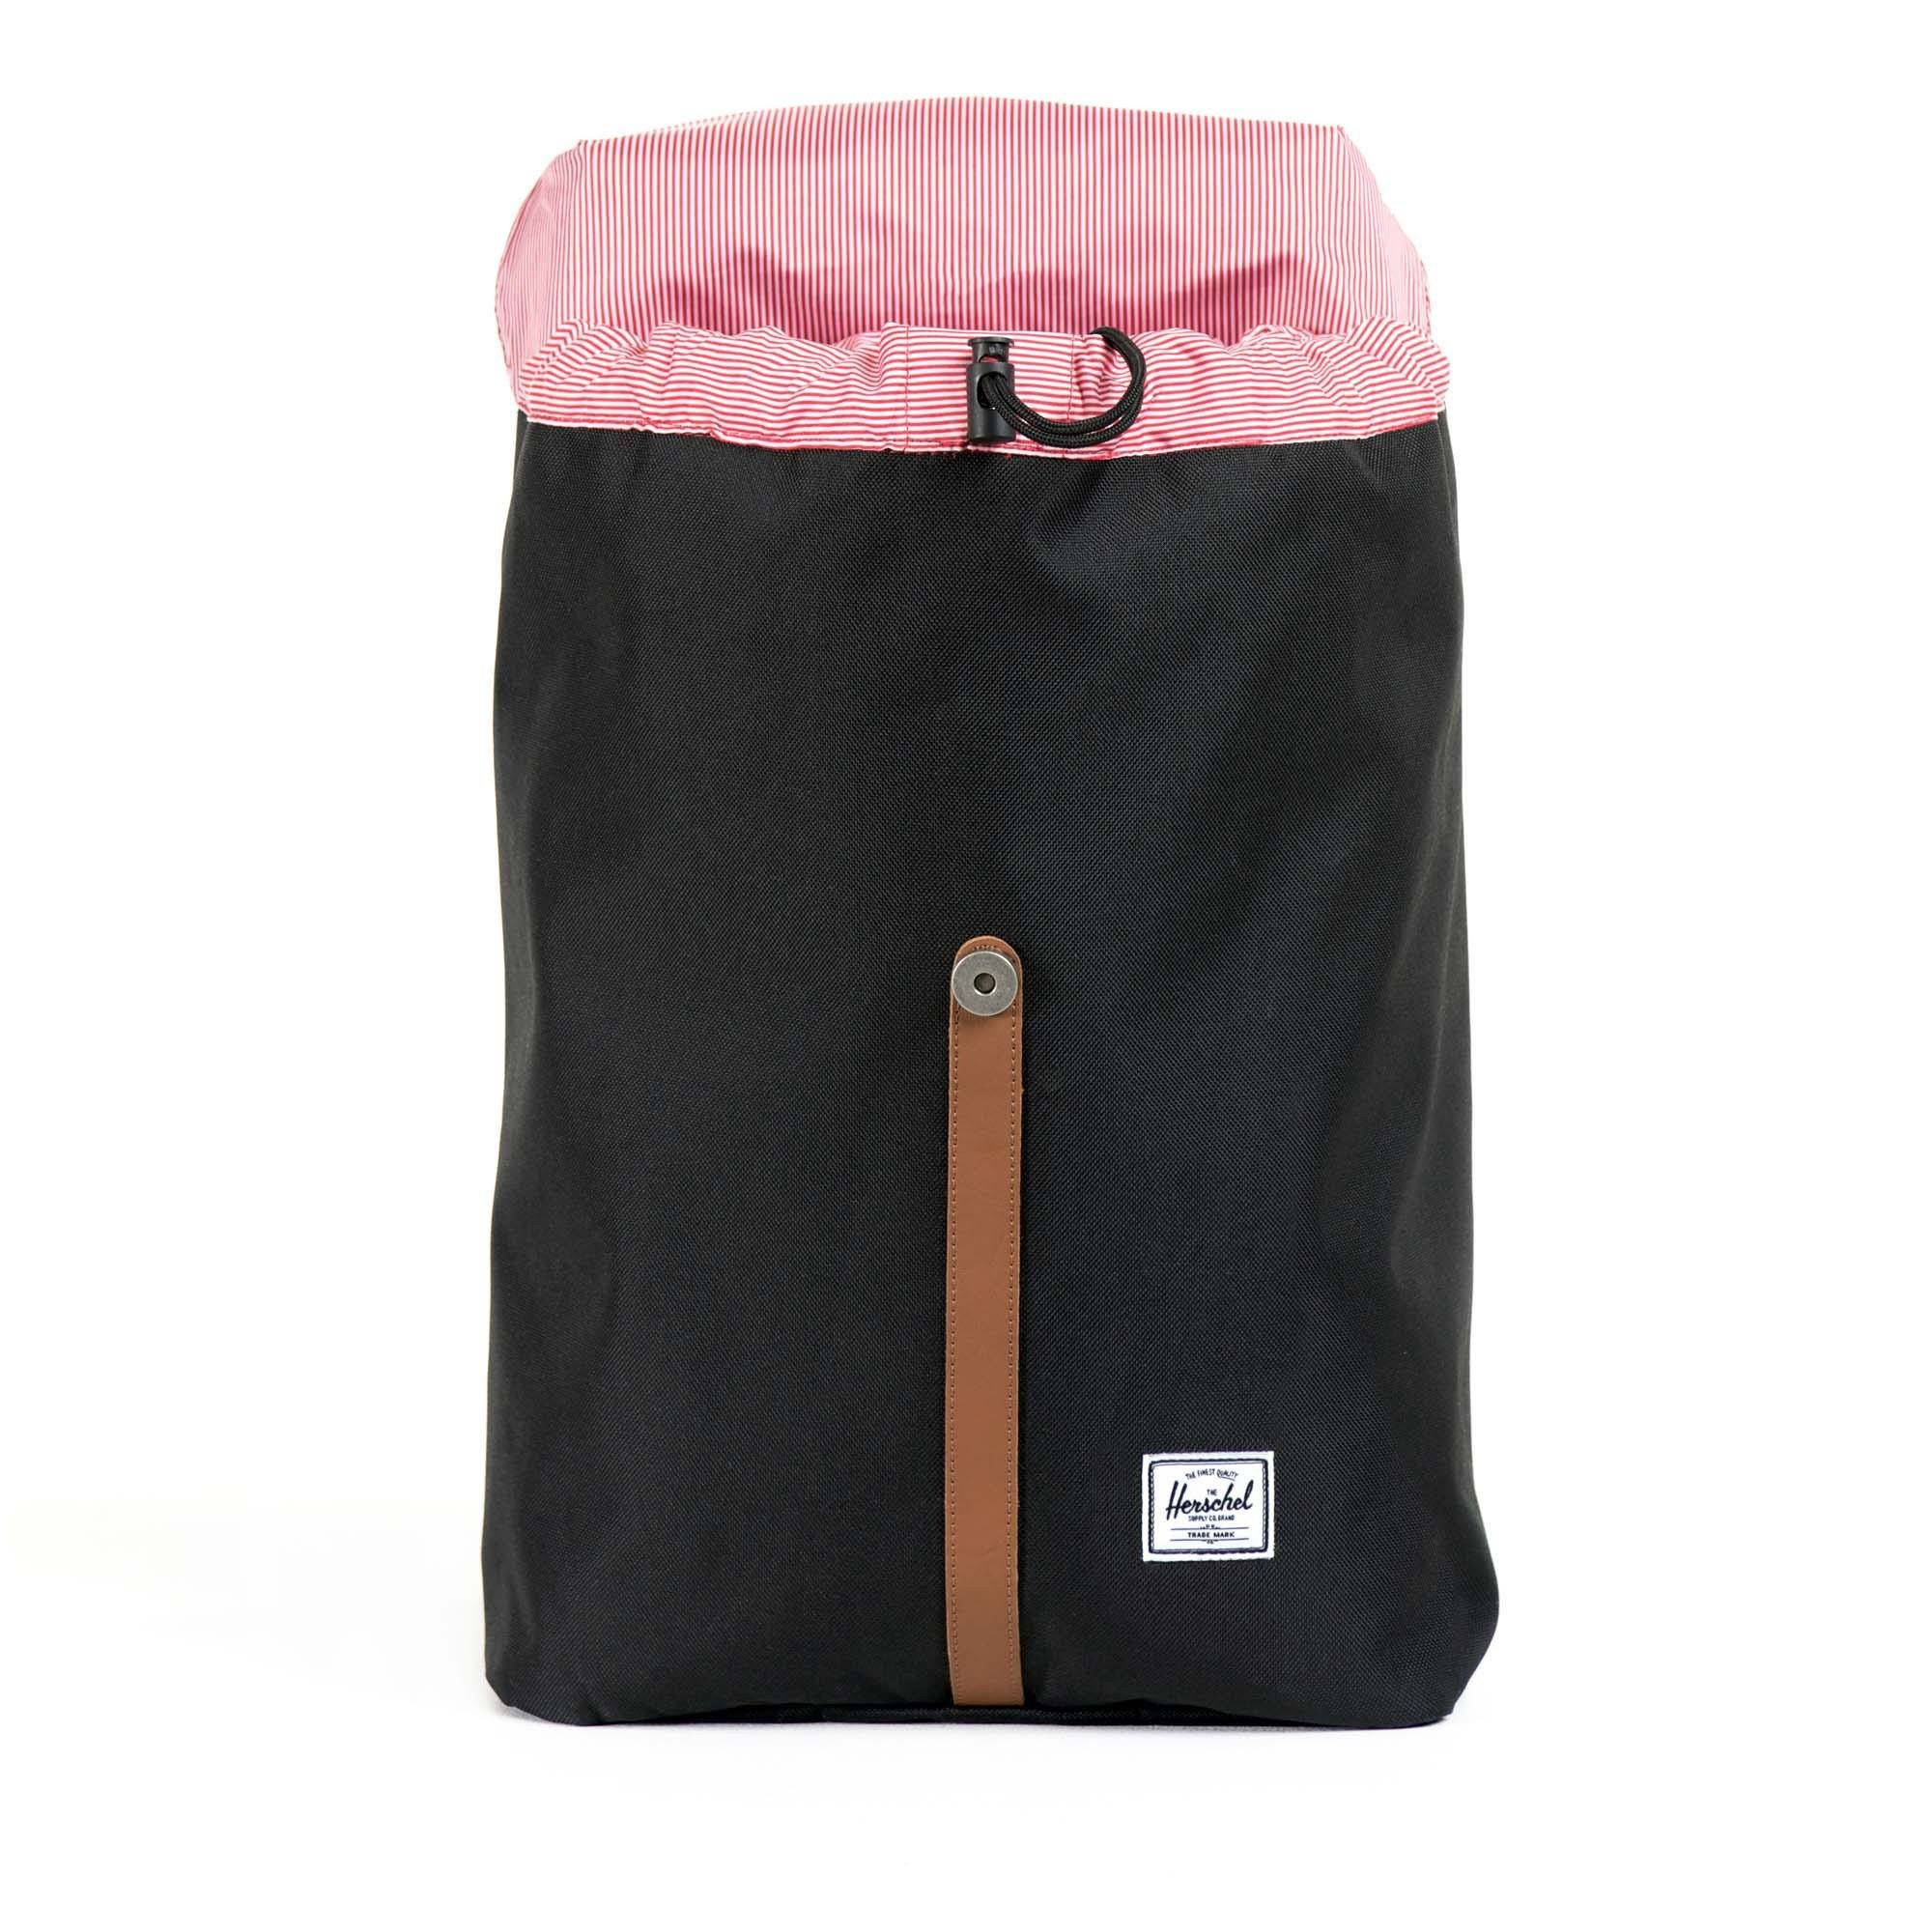 dd0776562f88 Herschel Supply Co. Post Backpack with Laptop Sleeve - Mid-Volume ...